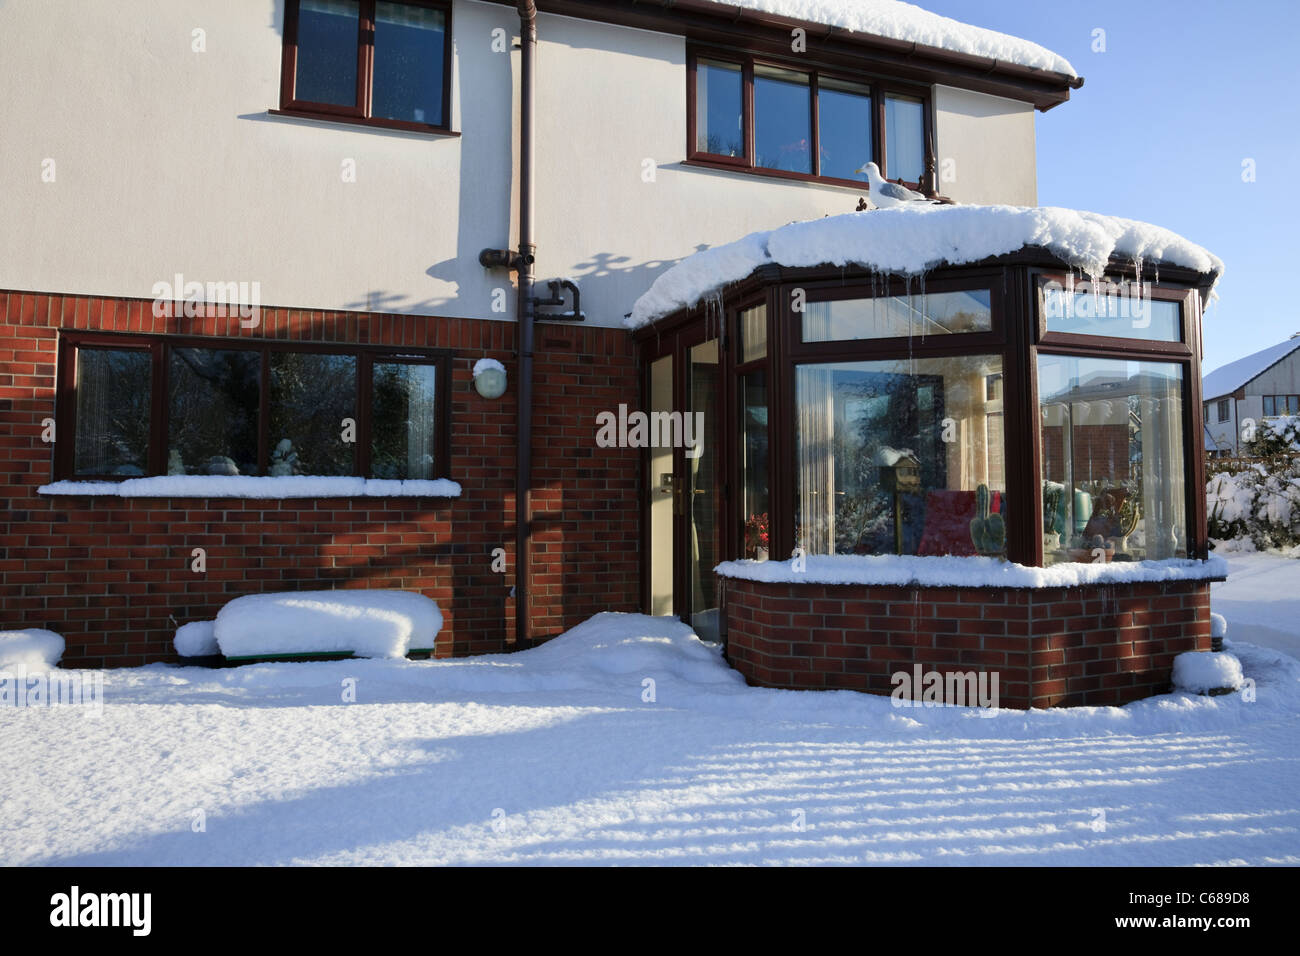 House with conservatory from back garden covered in snow in winter 2010. UK - Stock Image